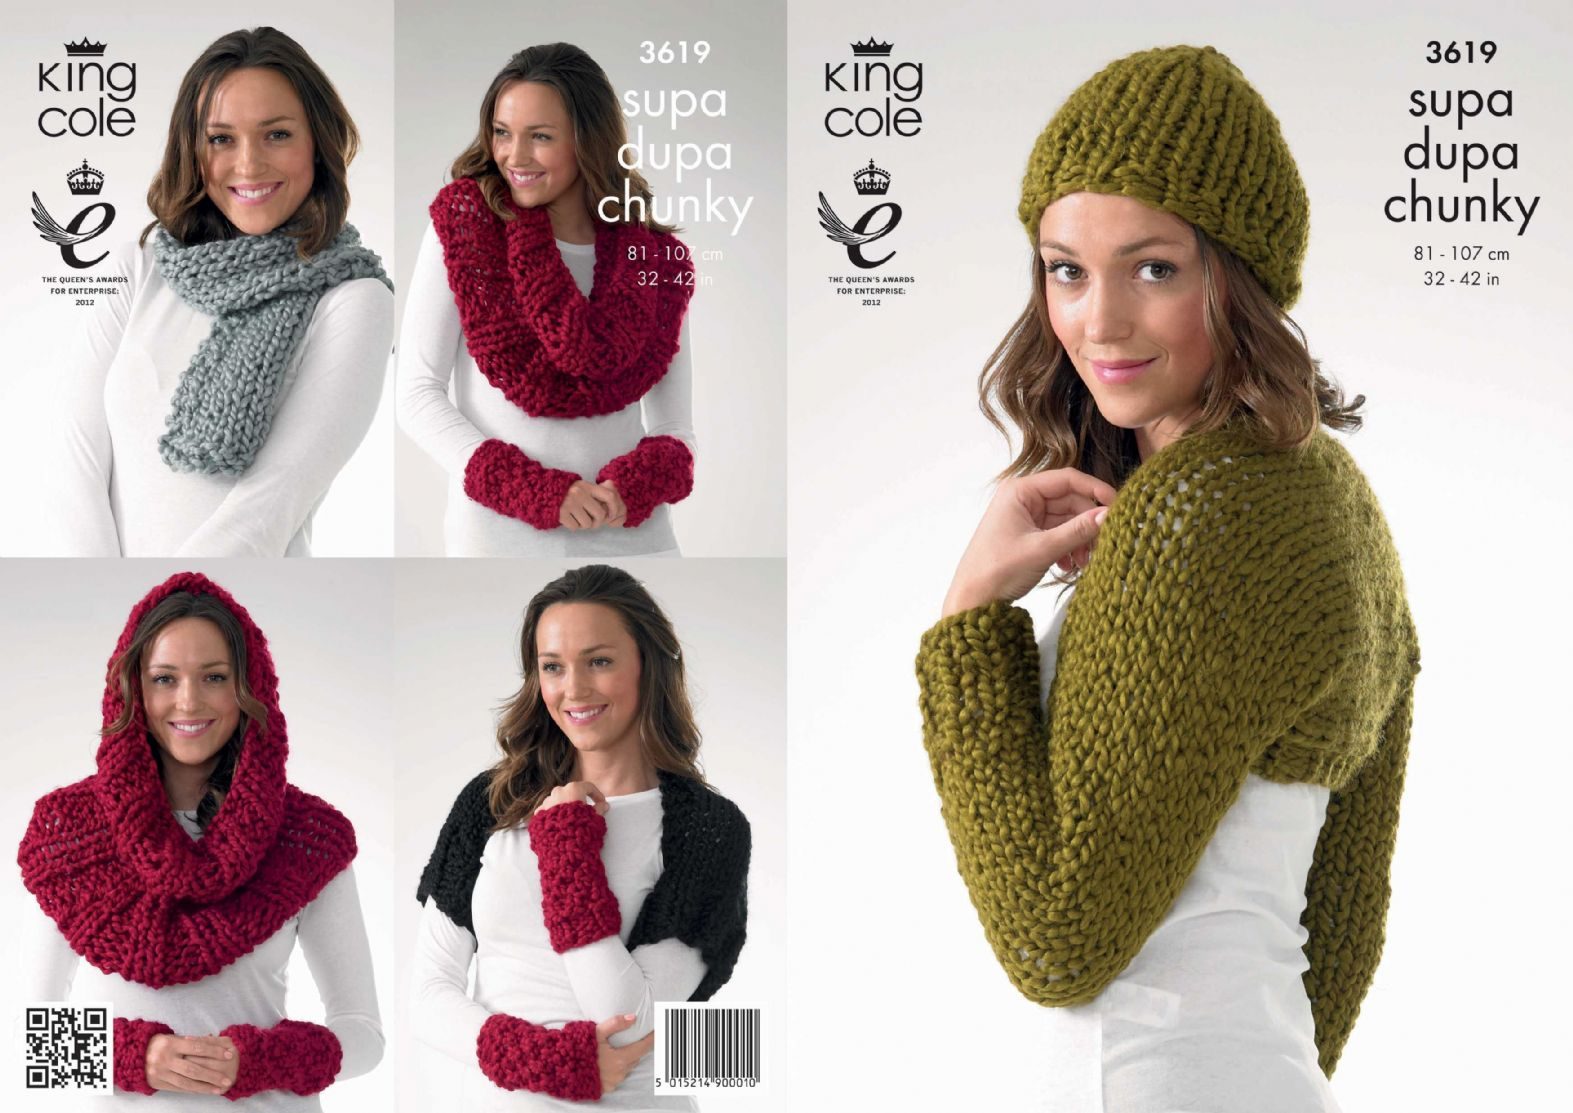 3619 king cole supa dupa extra chunky shrug snood scarf hat 3619 king cole supa dupa extra chunky shrug snood scarf hat knitting pattern to fit chest 32 to 42 bankloansurffo Images